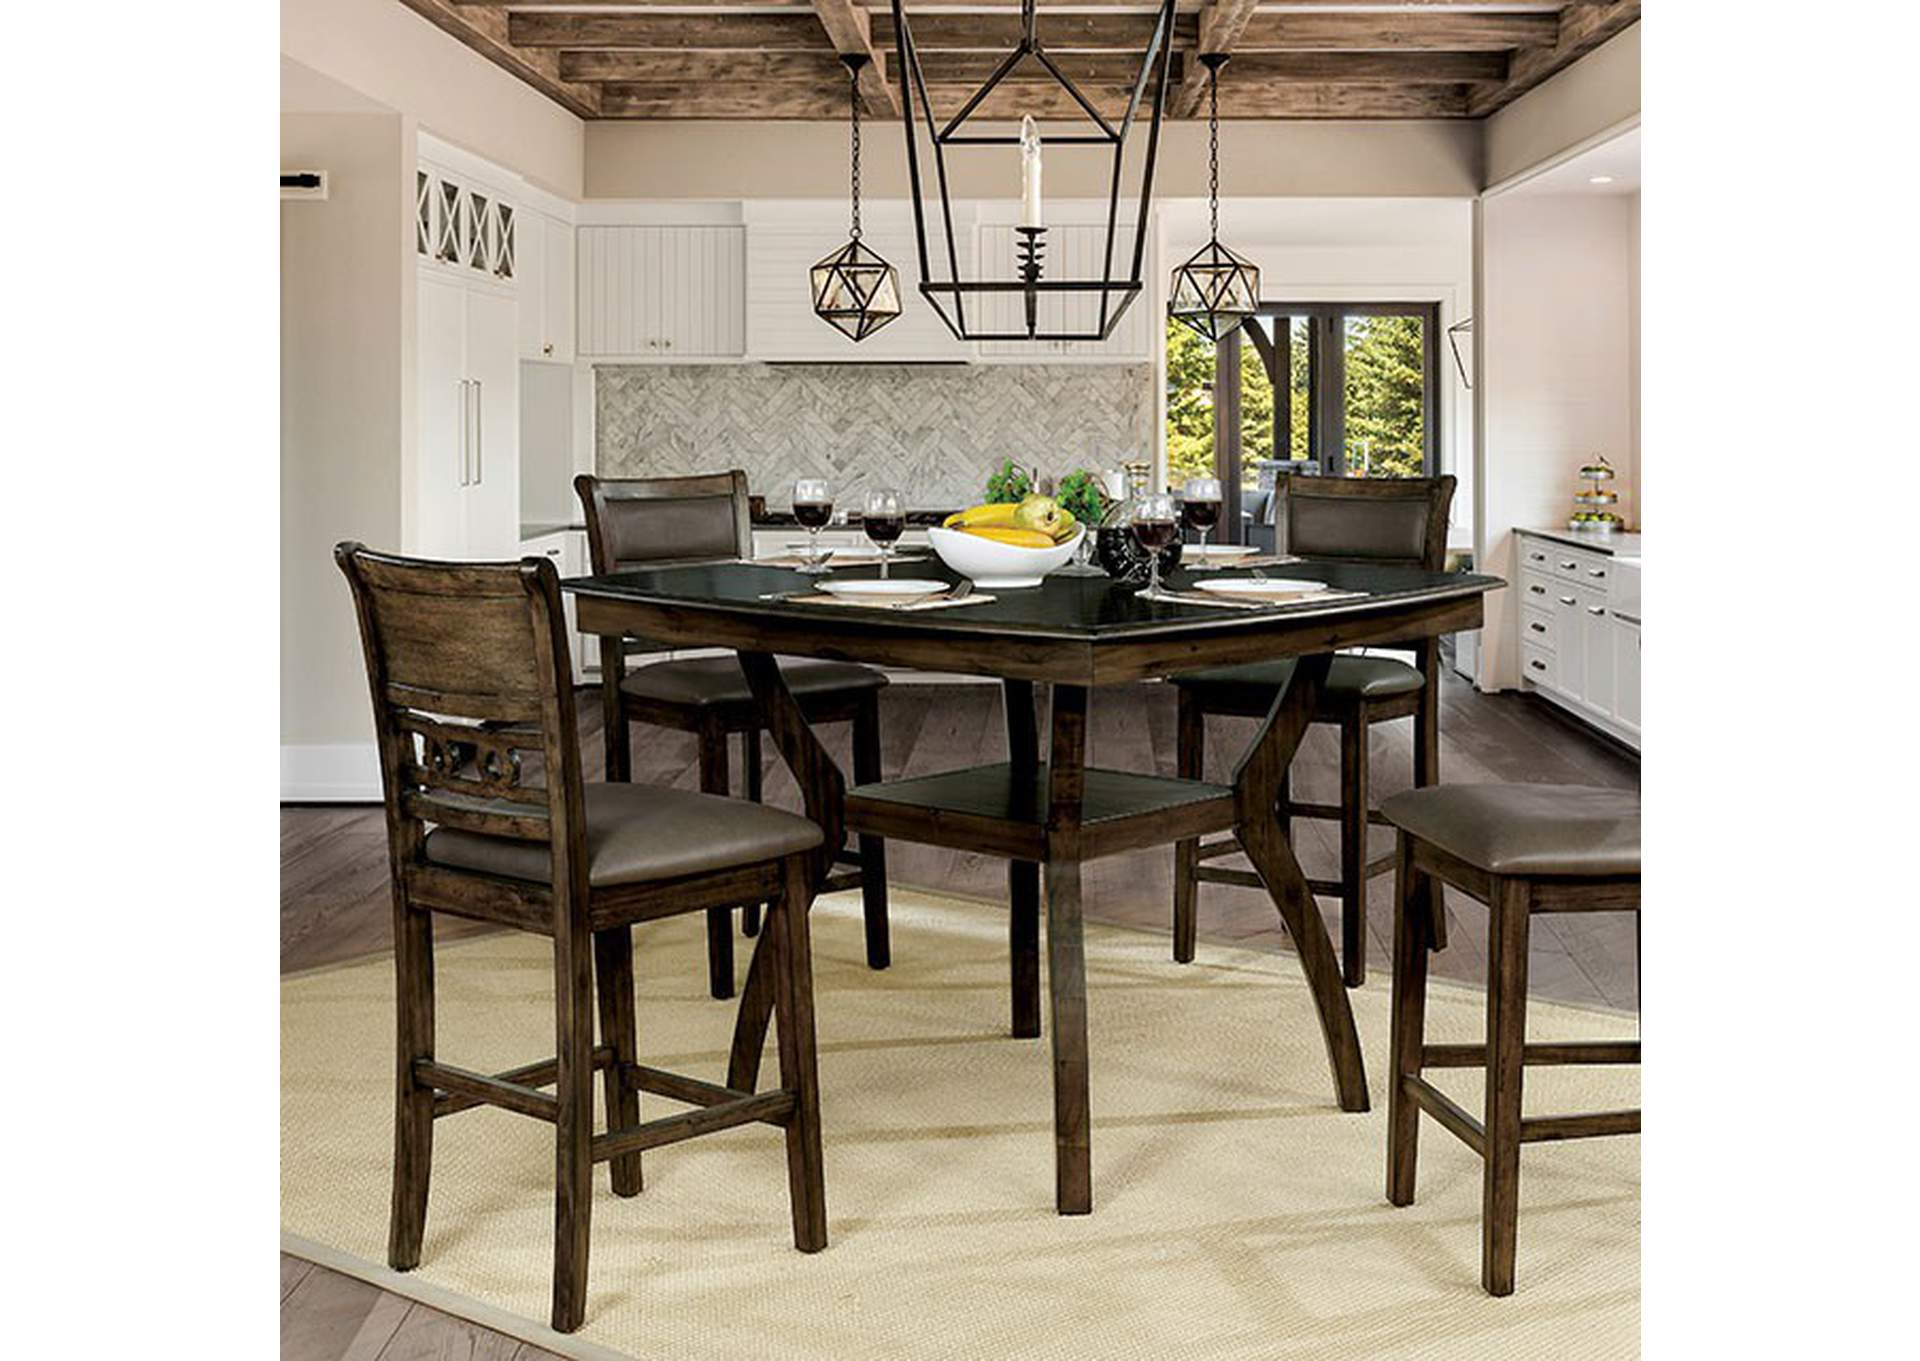 Flick Rustic Oak Counter Height Table,Furniture of America